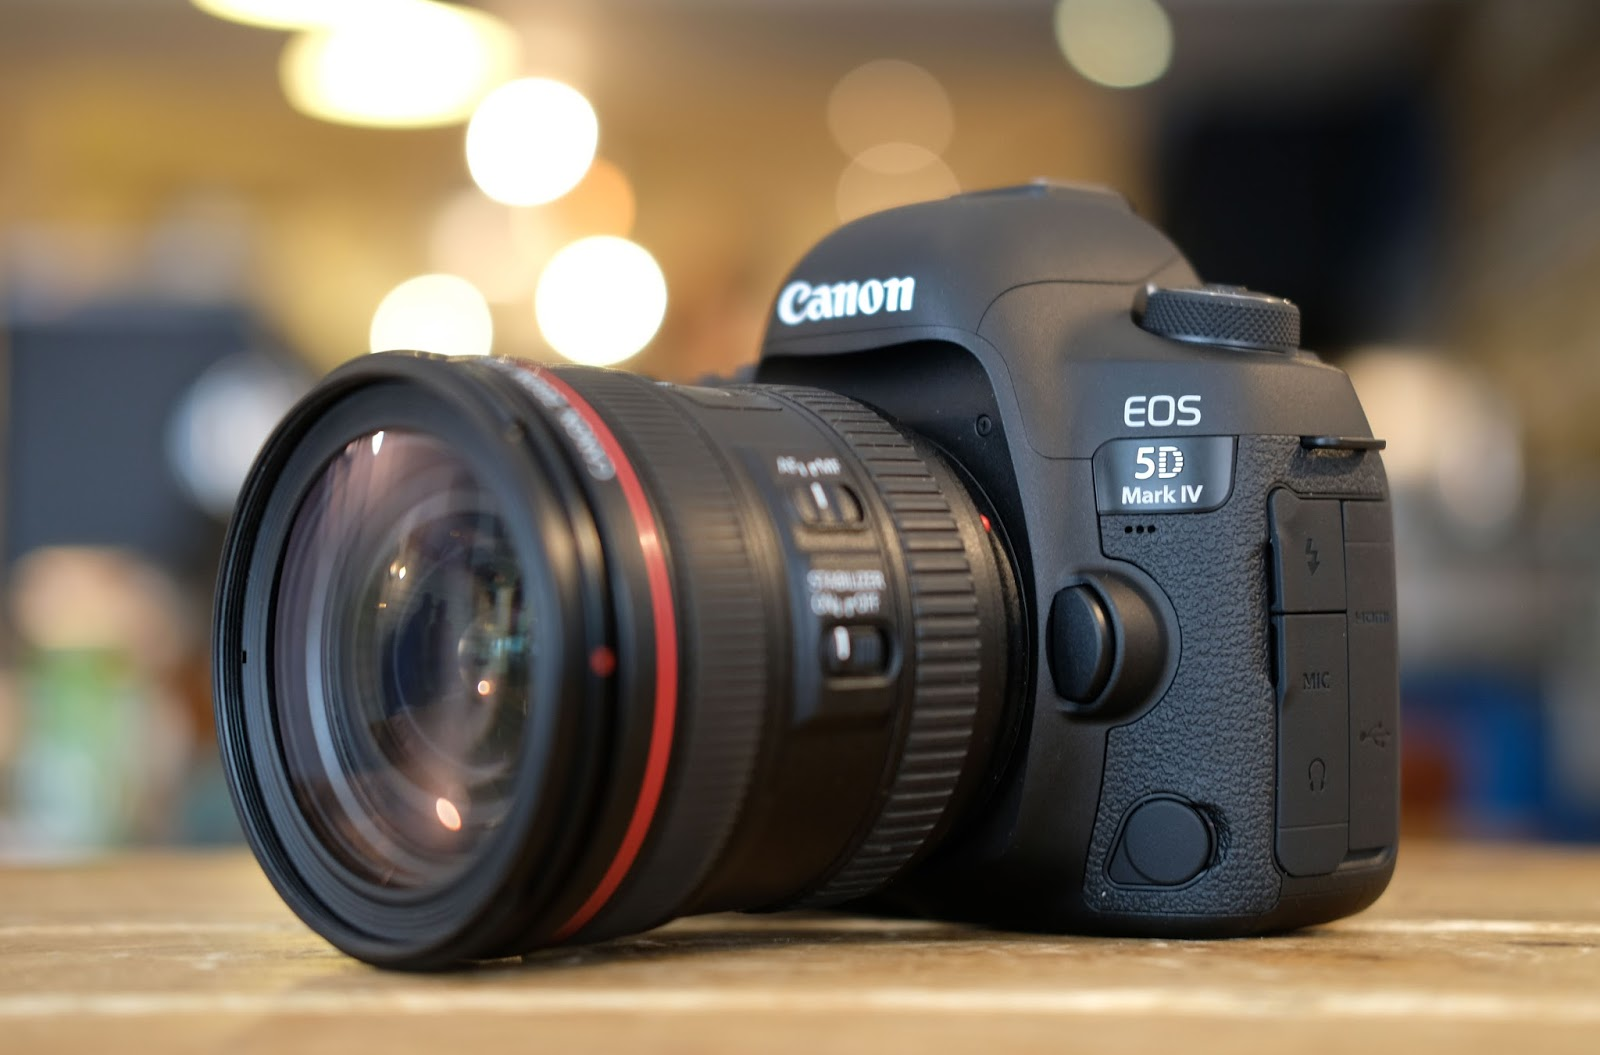 What kind of camera do most professional photographers use?